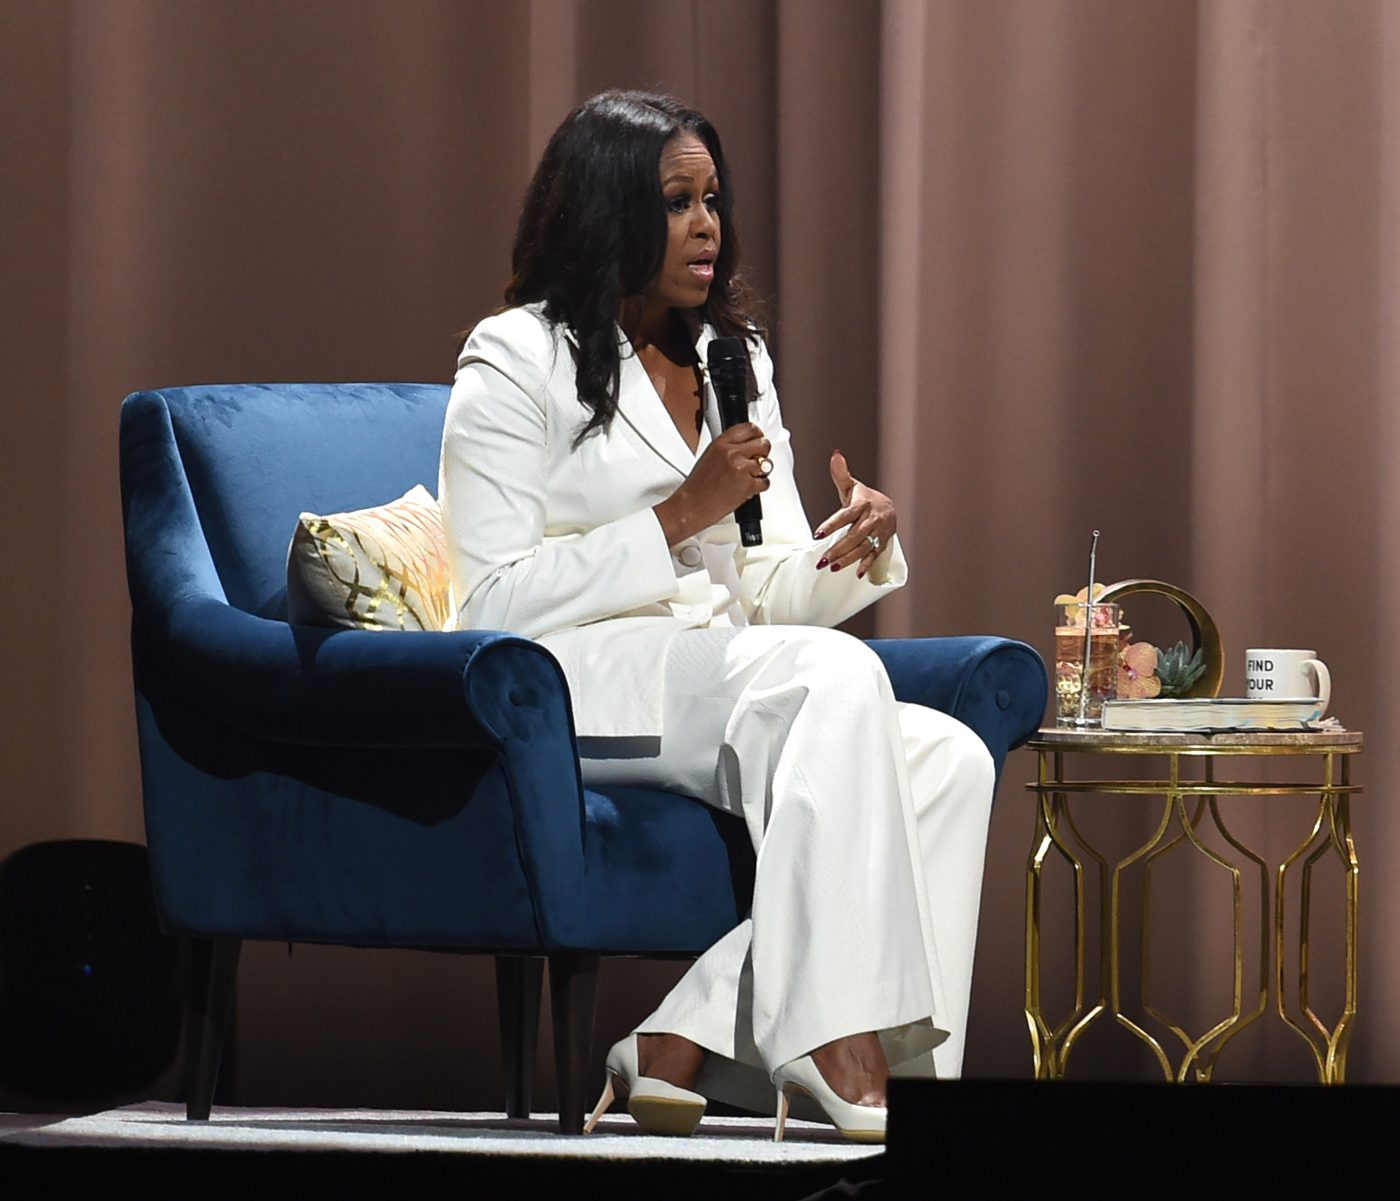 Michelle-Obama-White-Pantsuit-Becoming-Tour